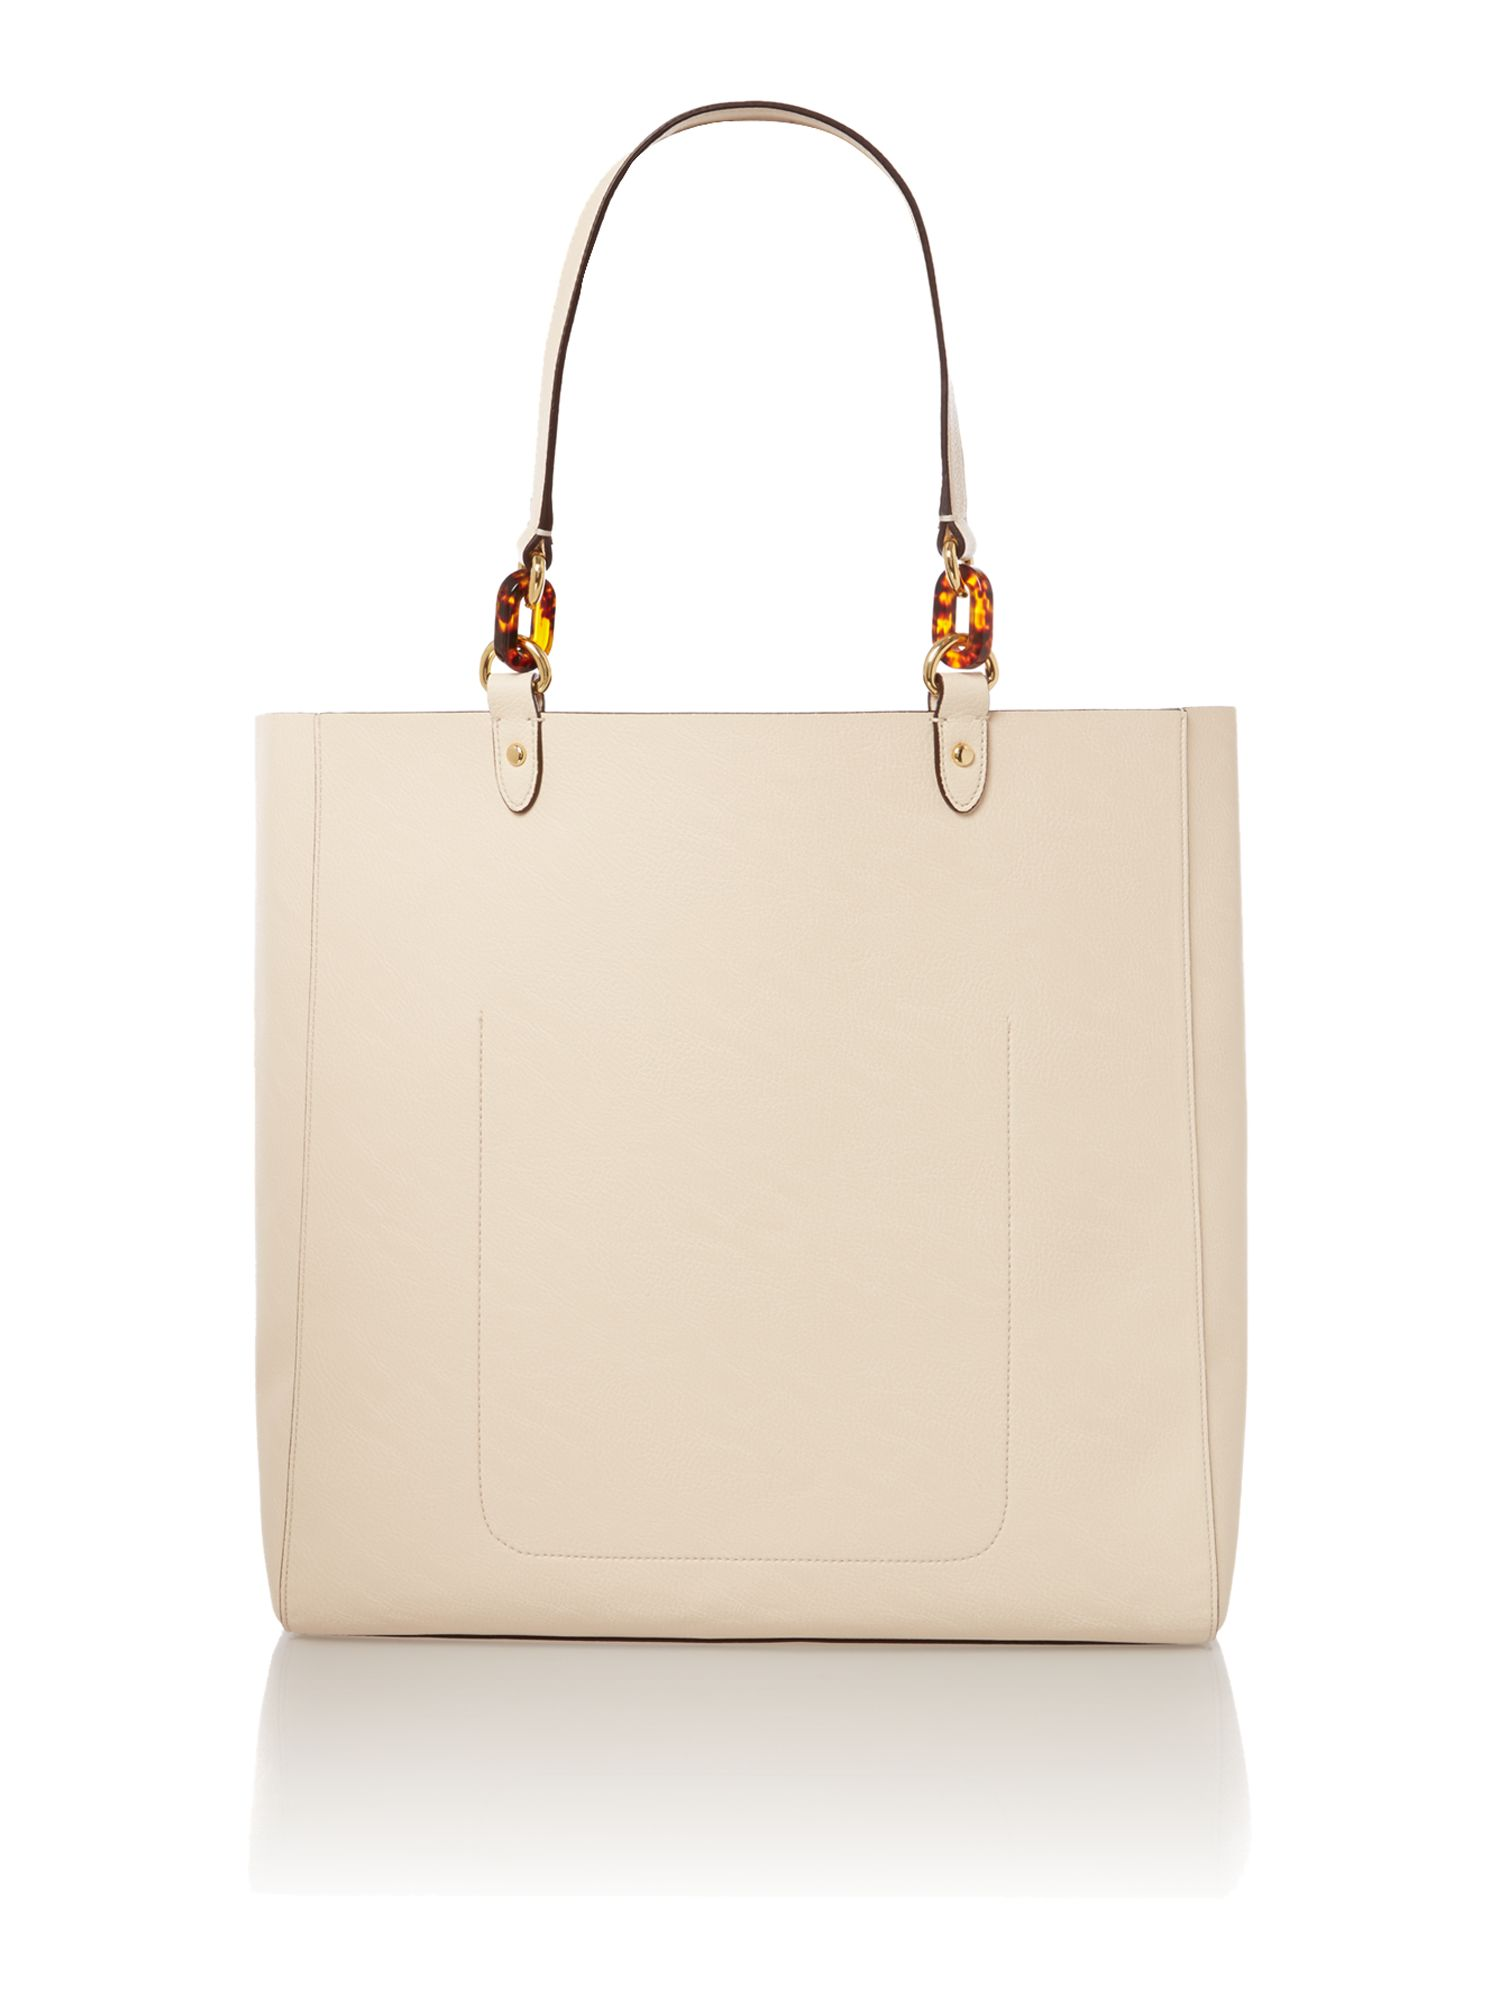 Bembridge neutral tote bag